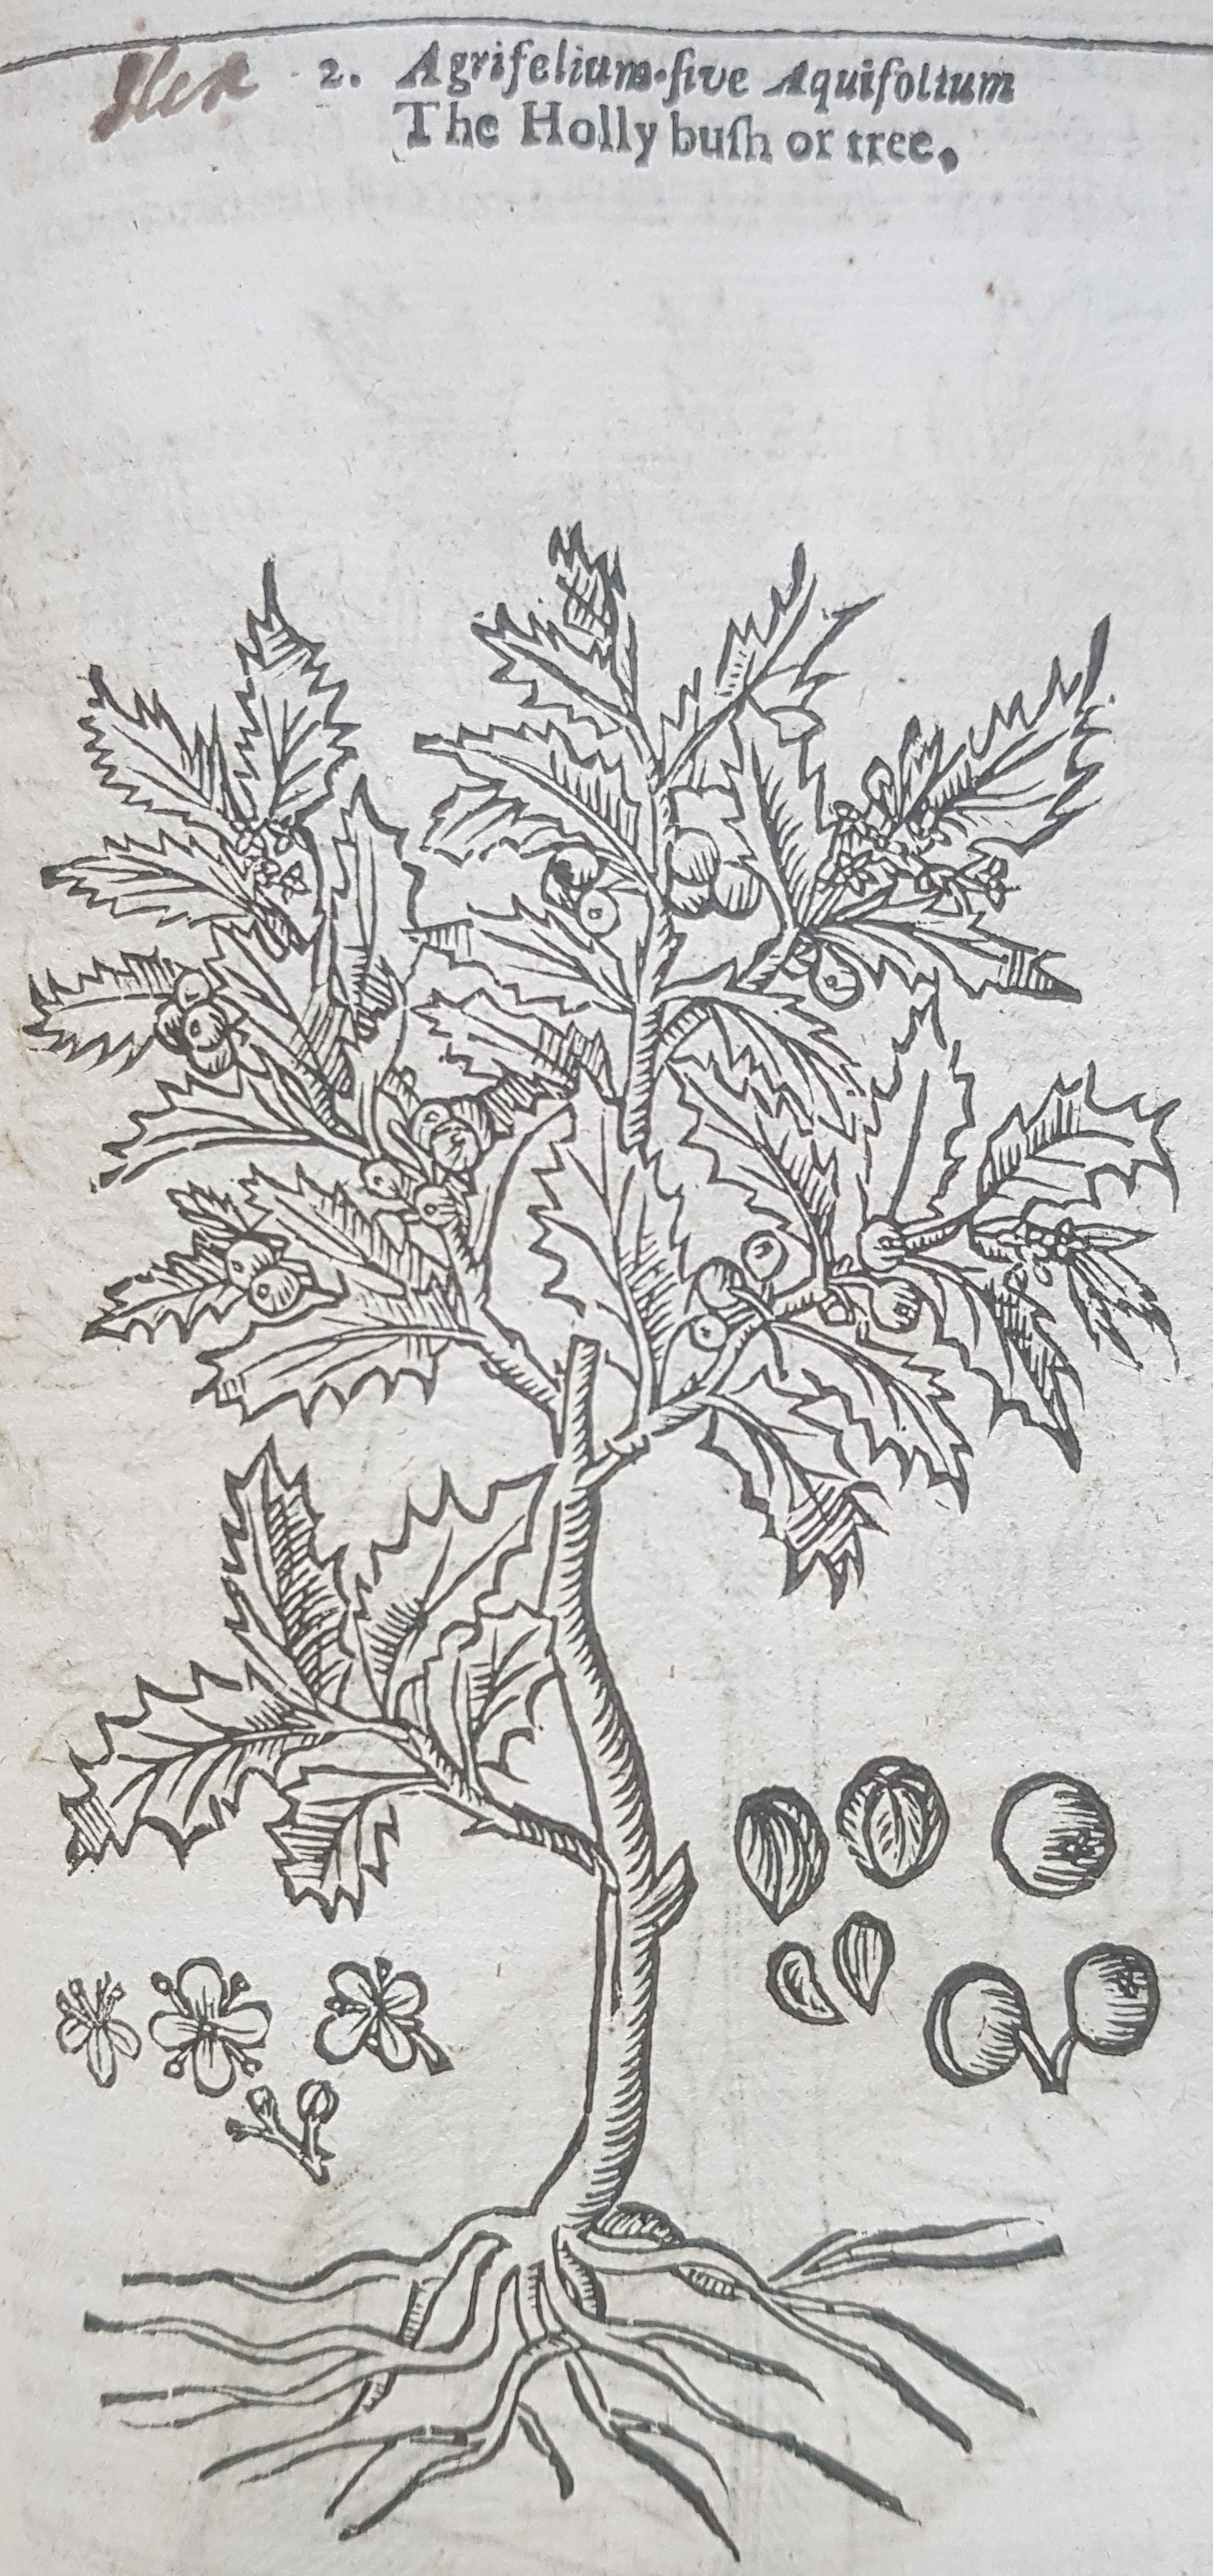 Line drawing of 'The Holly bush or tree'.